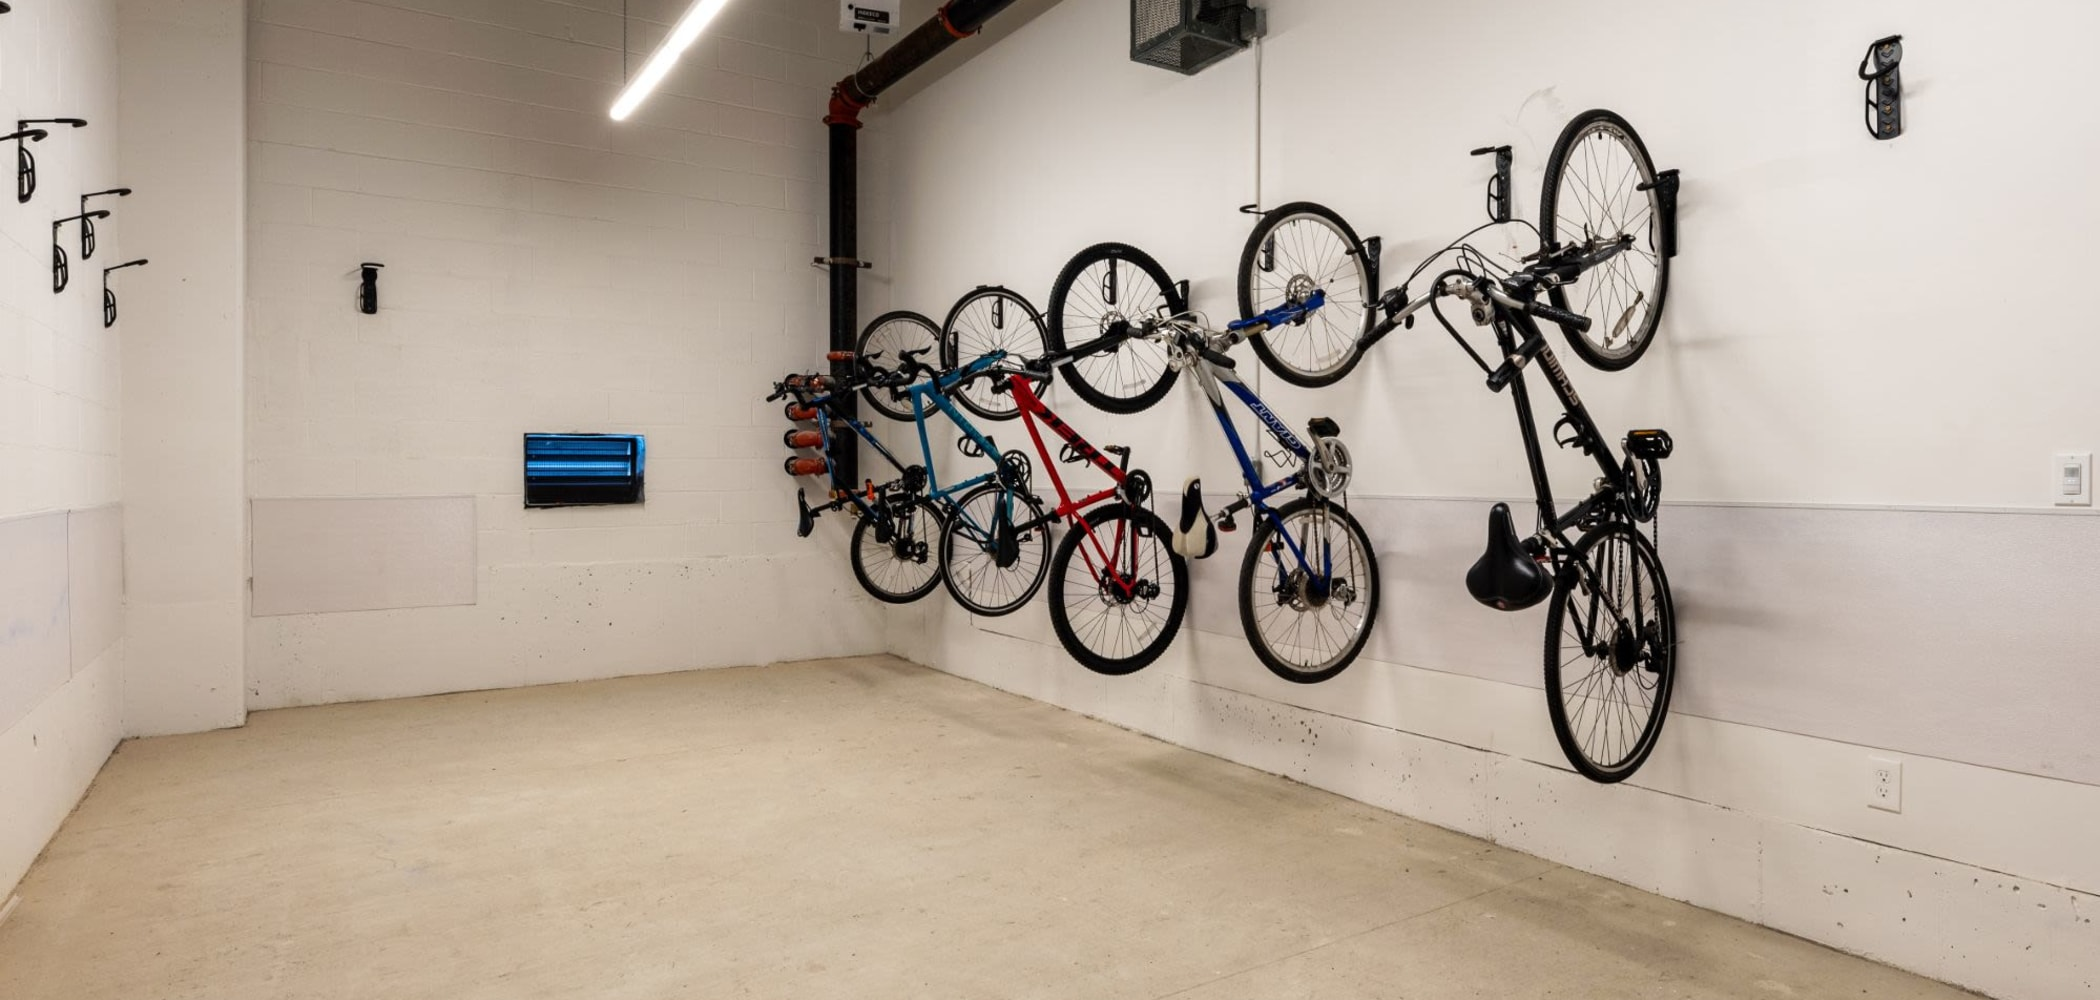 Storage area for bikes in the garage at The View on Pavey Square in Columbus, Ohio